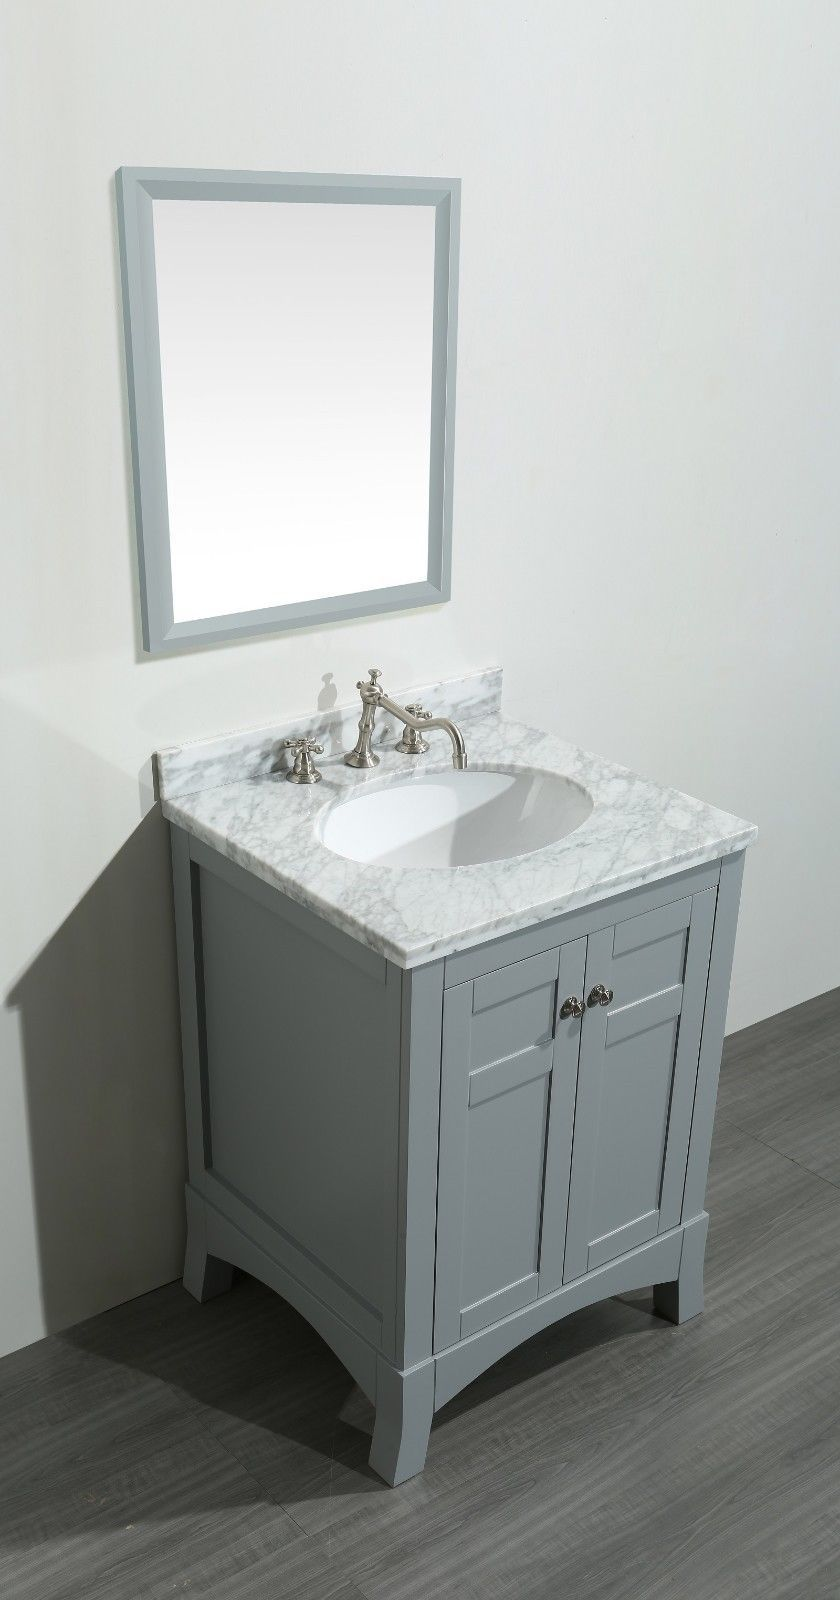 Transitional 24 Inch Gray Bath Vanity Marble Carrera Top With Images Grey Bathroom Vanity Bathroom Vanity Bathroom Vanity Designs